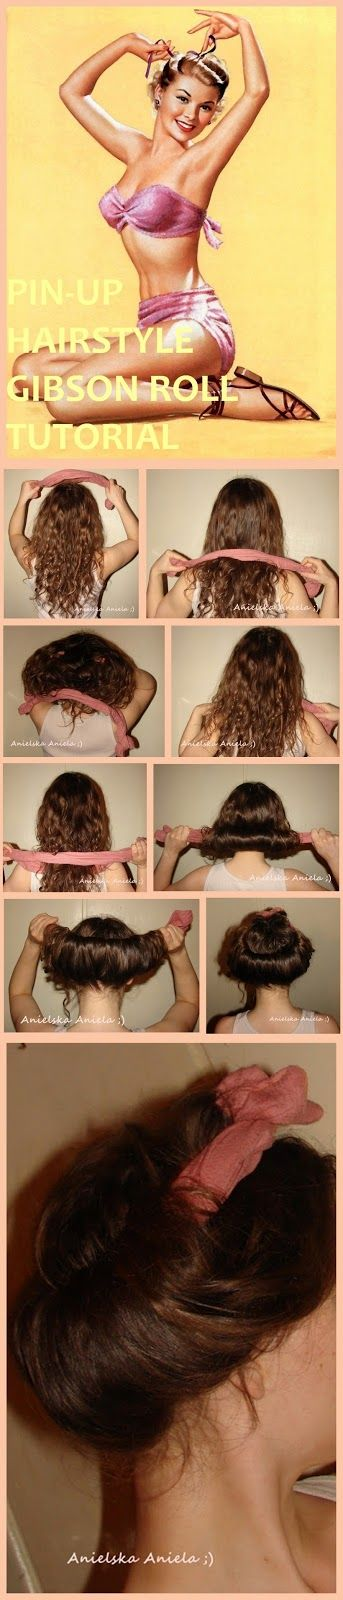 gibson roll hairstyle